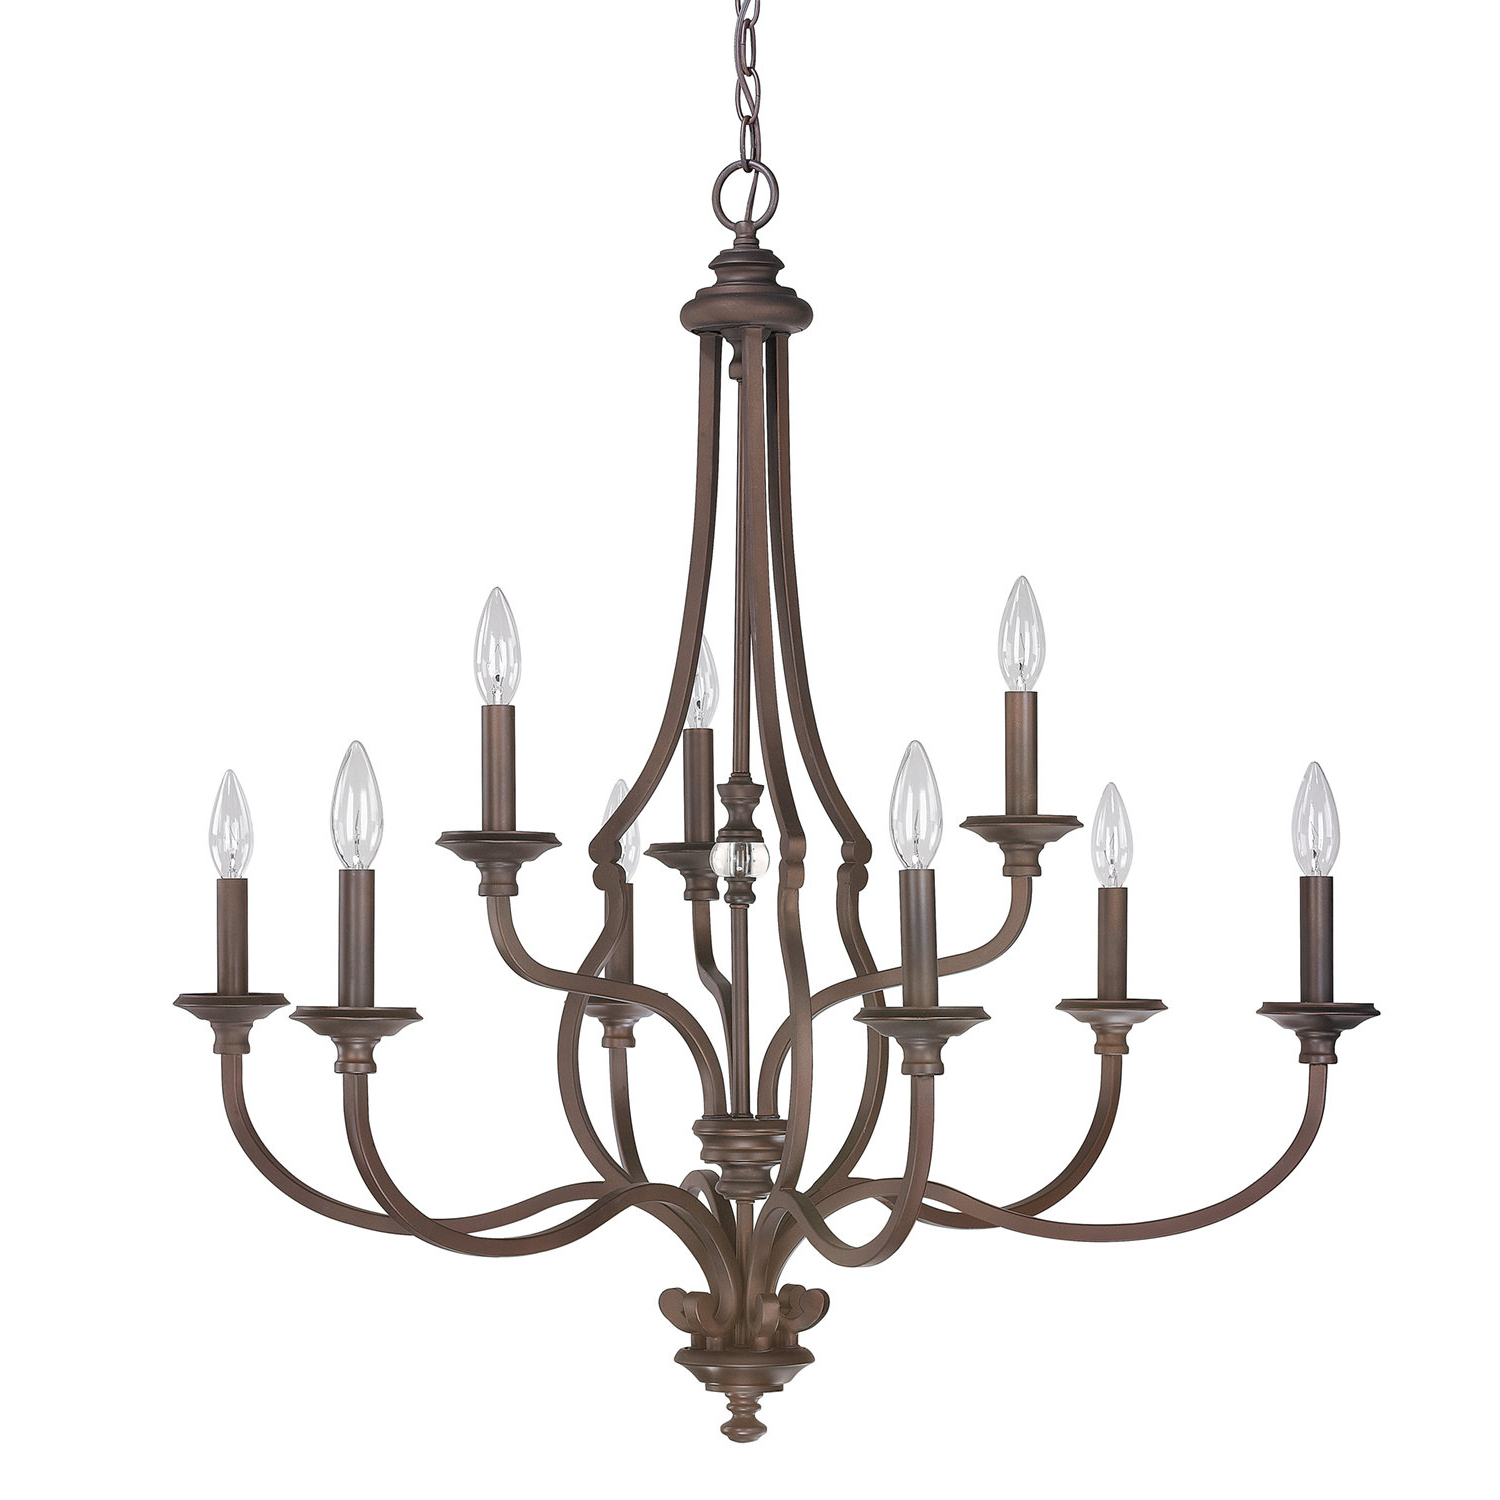 Gaines 9 Light Candle Style Chandeliers In Newest Darby Home Co Jaclyn 9 Light Candle Style Chandelier (View 7 of 25)